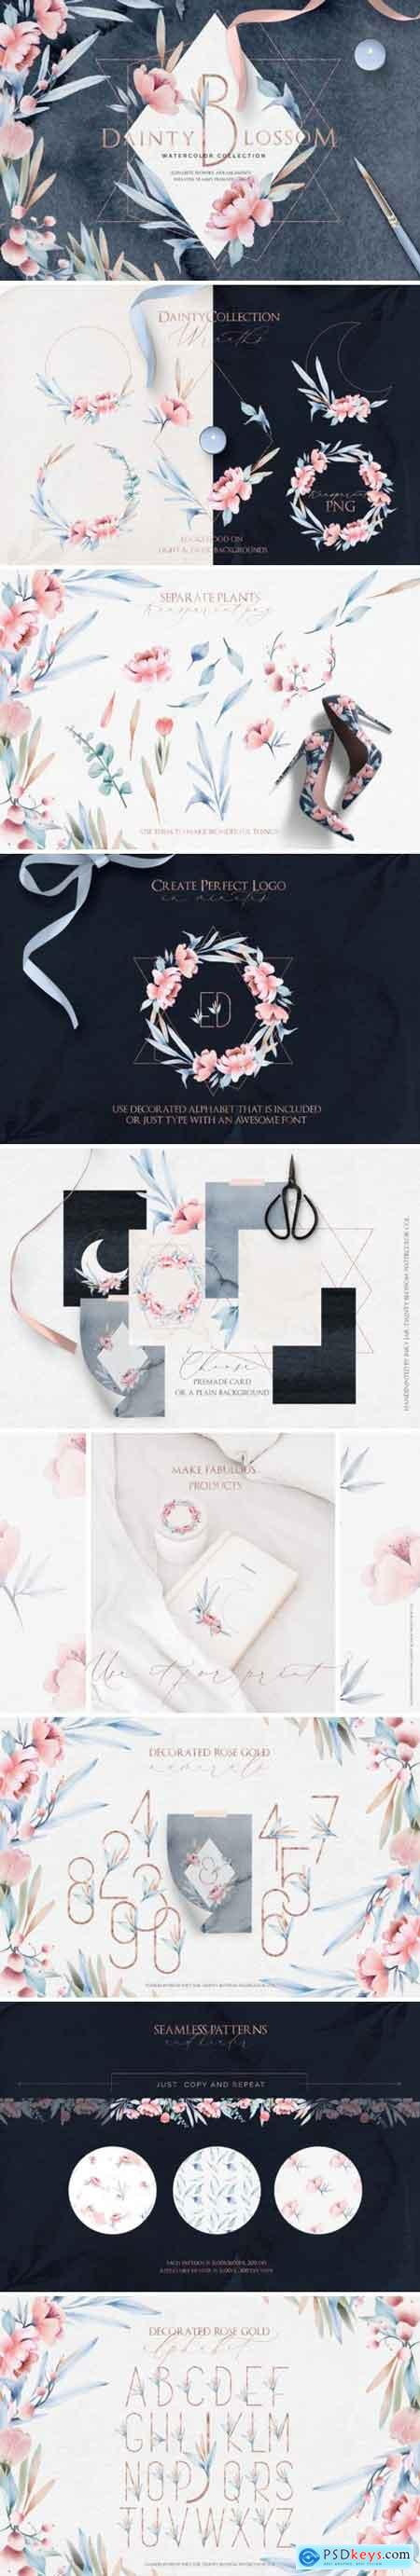 Creativemarket Fine Art Watercolor Collection Dainty Blossom